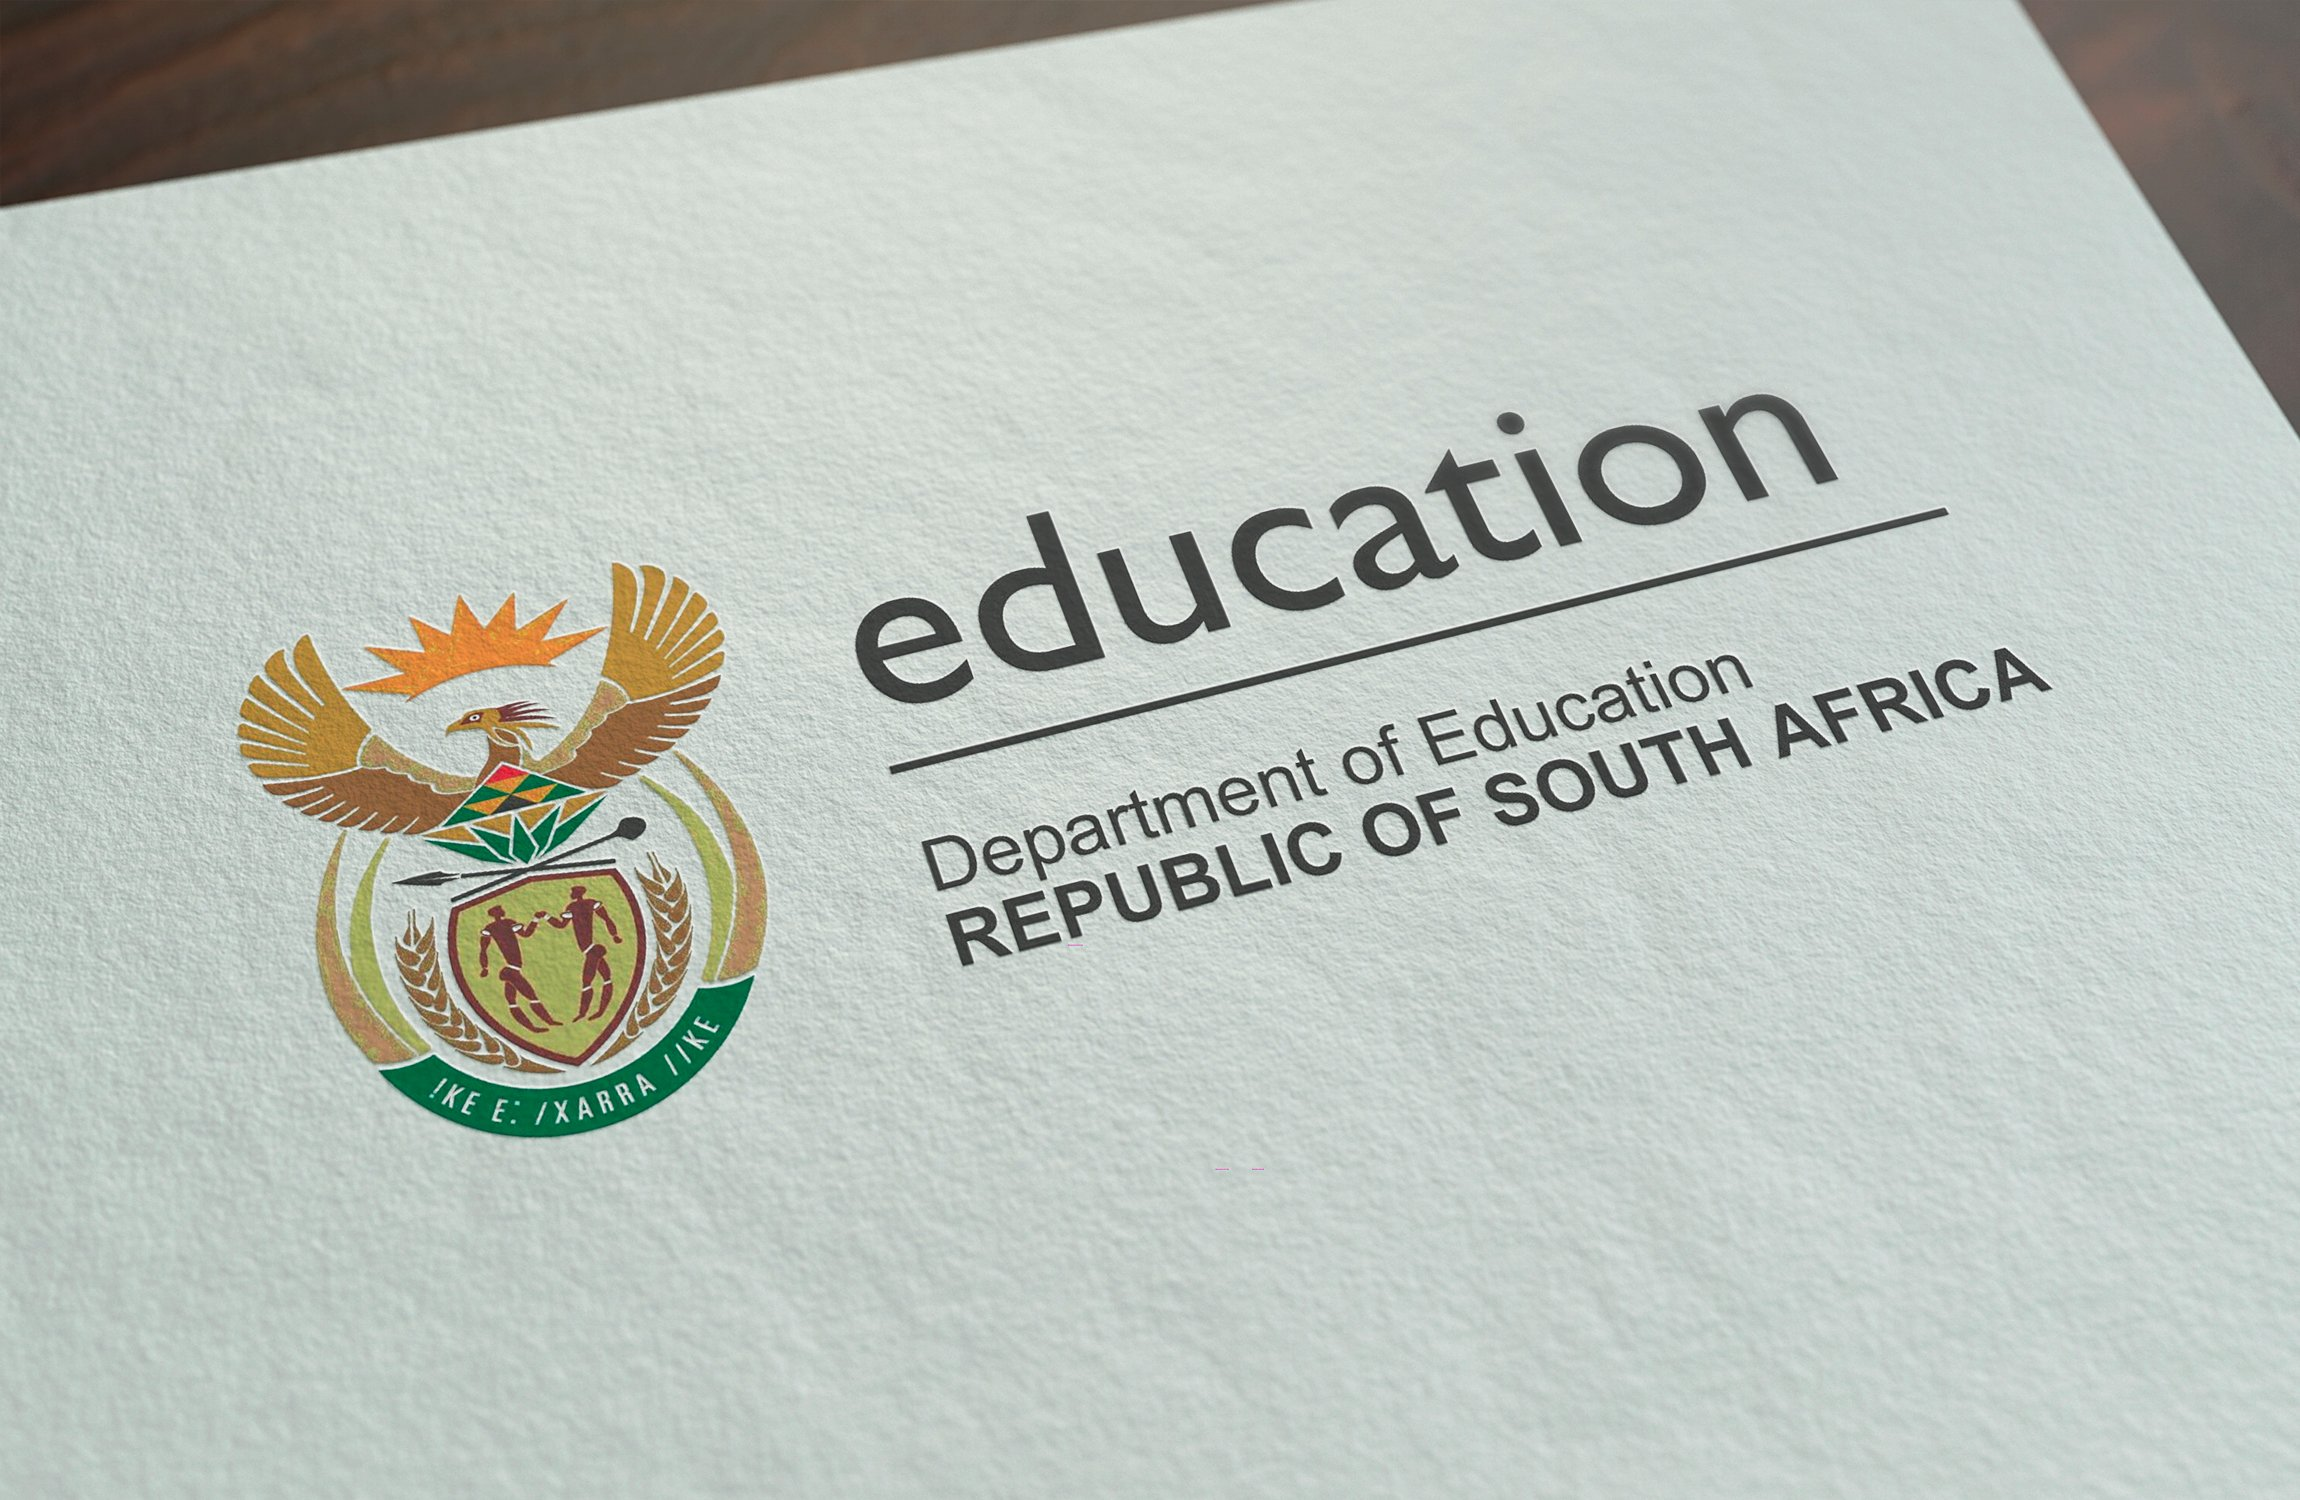 Apply online for a Gauteng school spot at your own risk